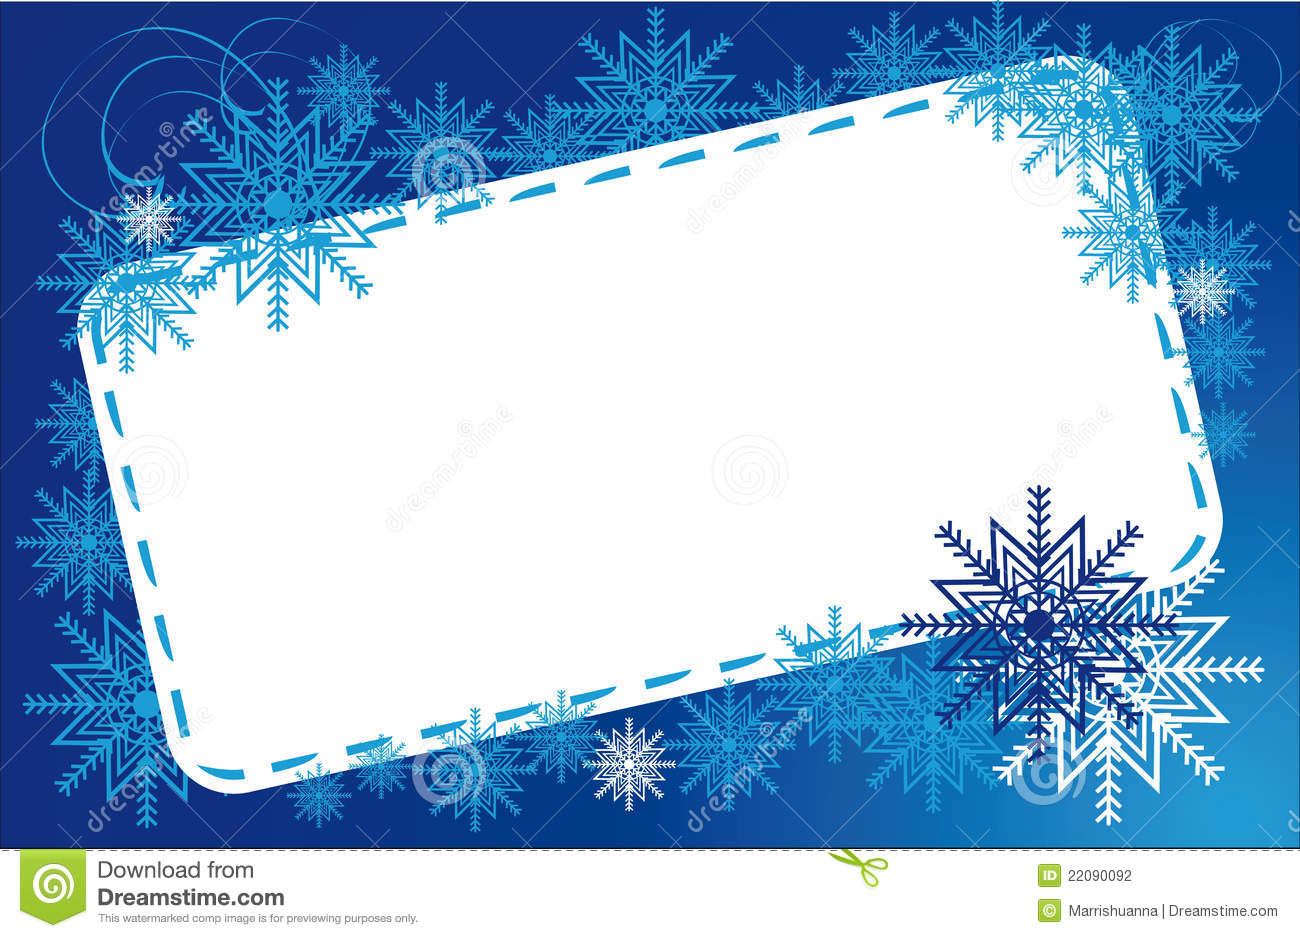 Frame winter snowflakes stock vector. Illustration of celebration ...